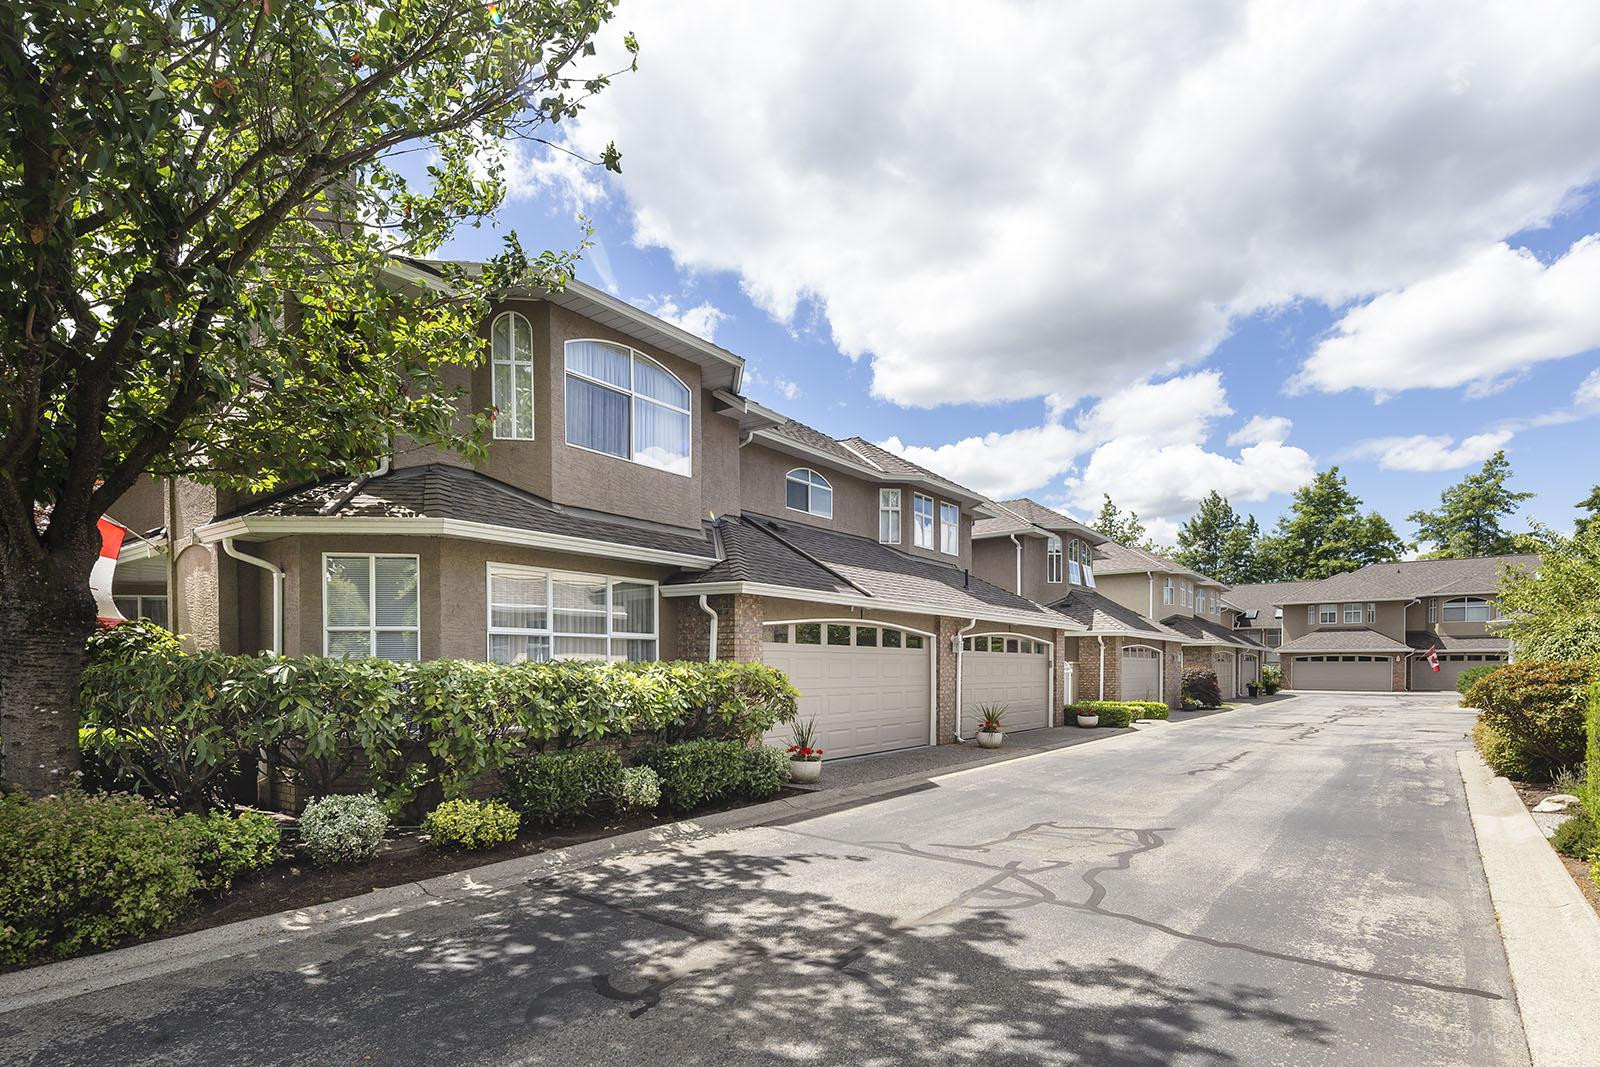 Lakewood Heights at 6211 Boundary Dr W, Surrey 1